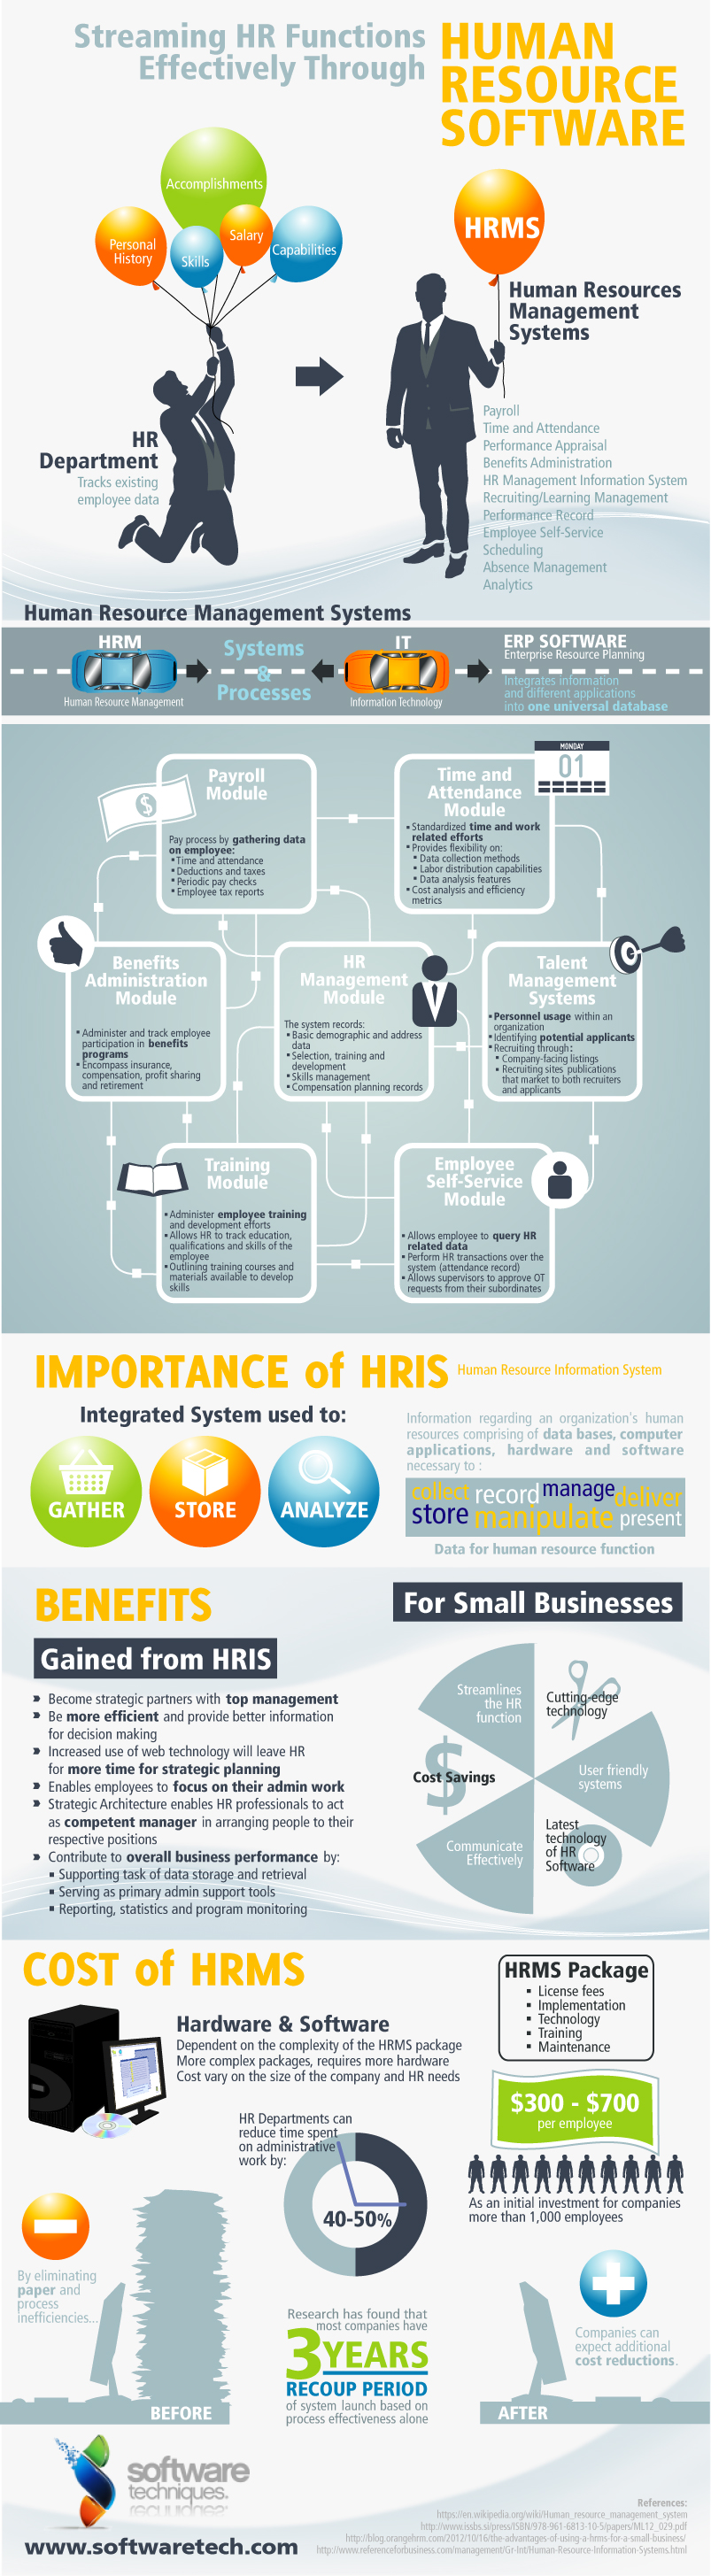 How To Effectively Use HR Software